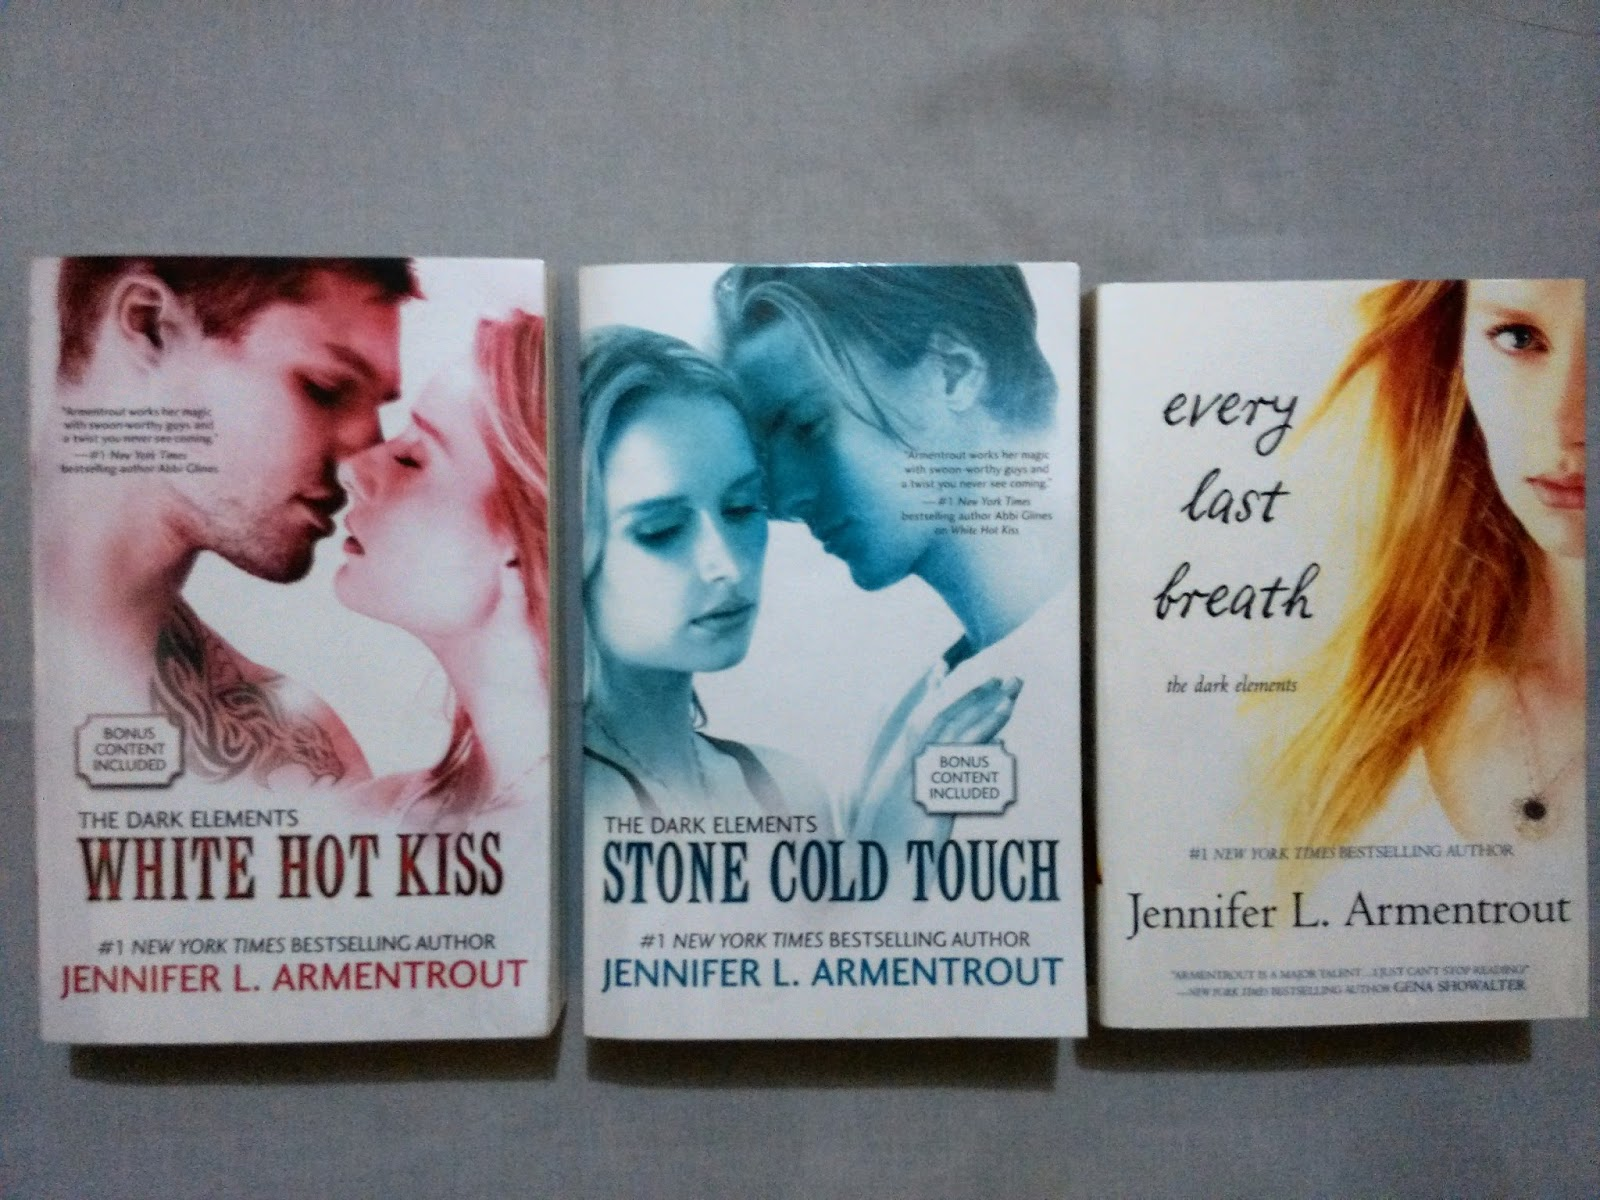 Stone Cold Touch (The Dark Elements #2) · Every Last Breath (The Dark  Elements #3) by Jennifer L. Armentrout